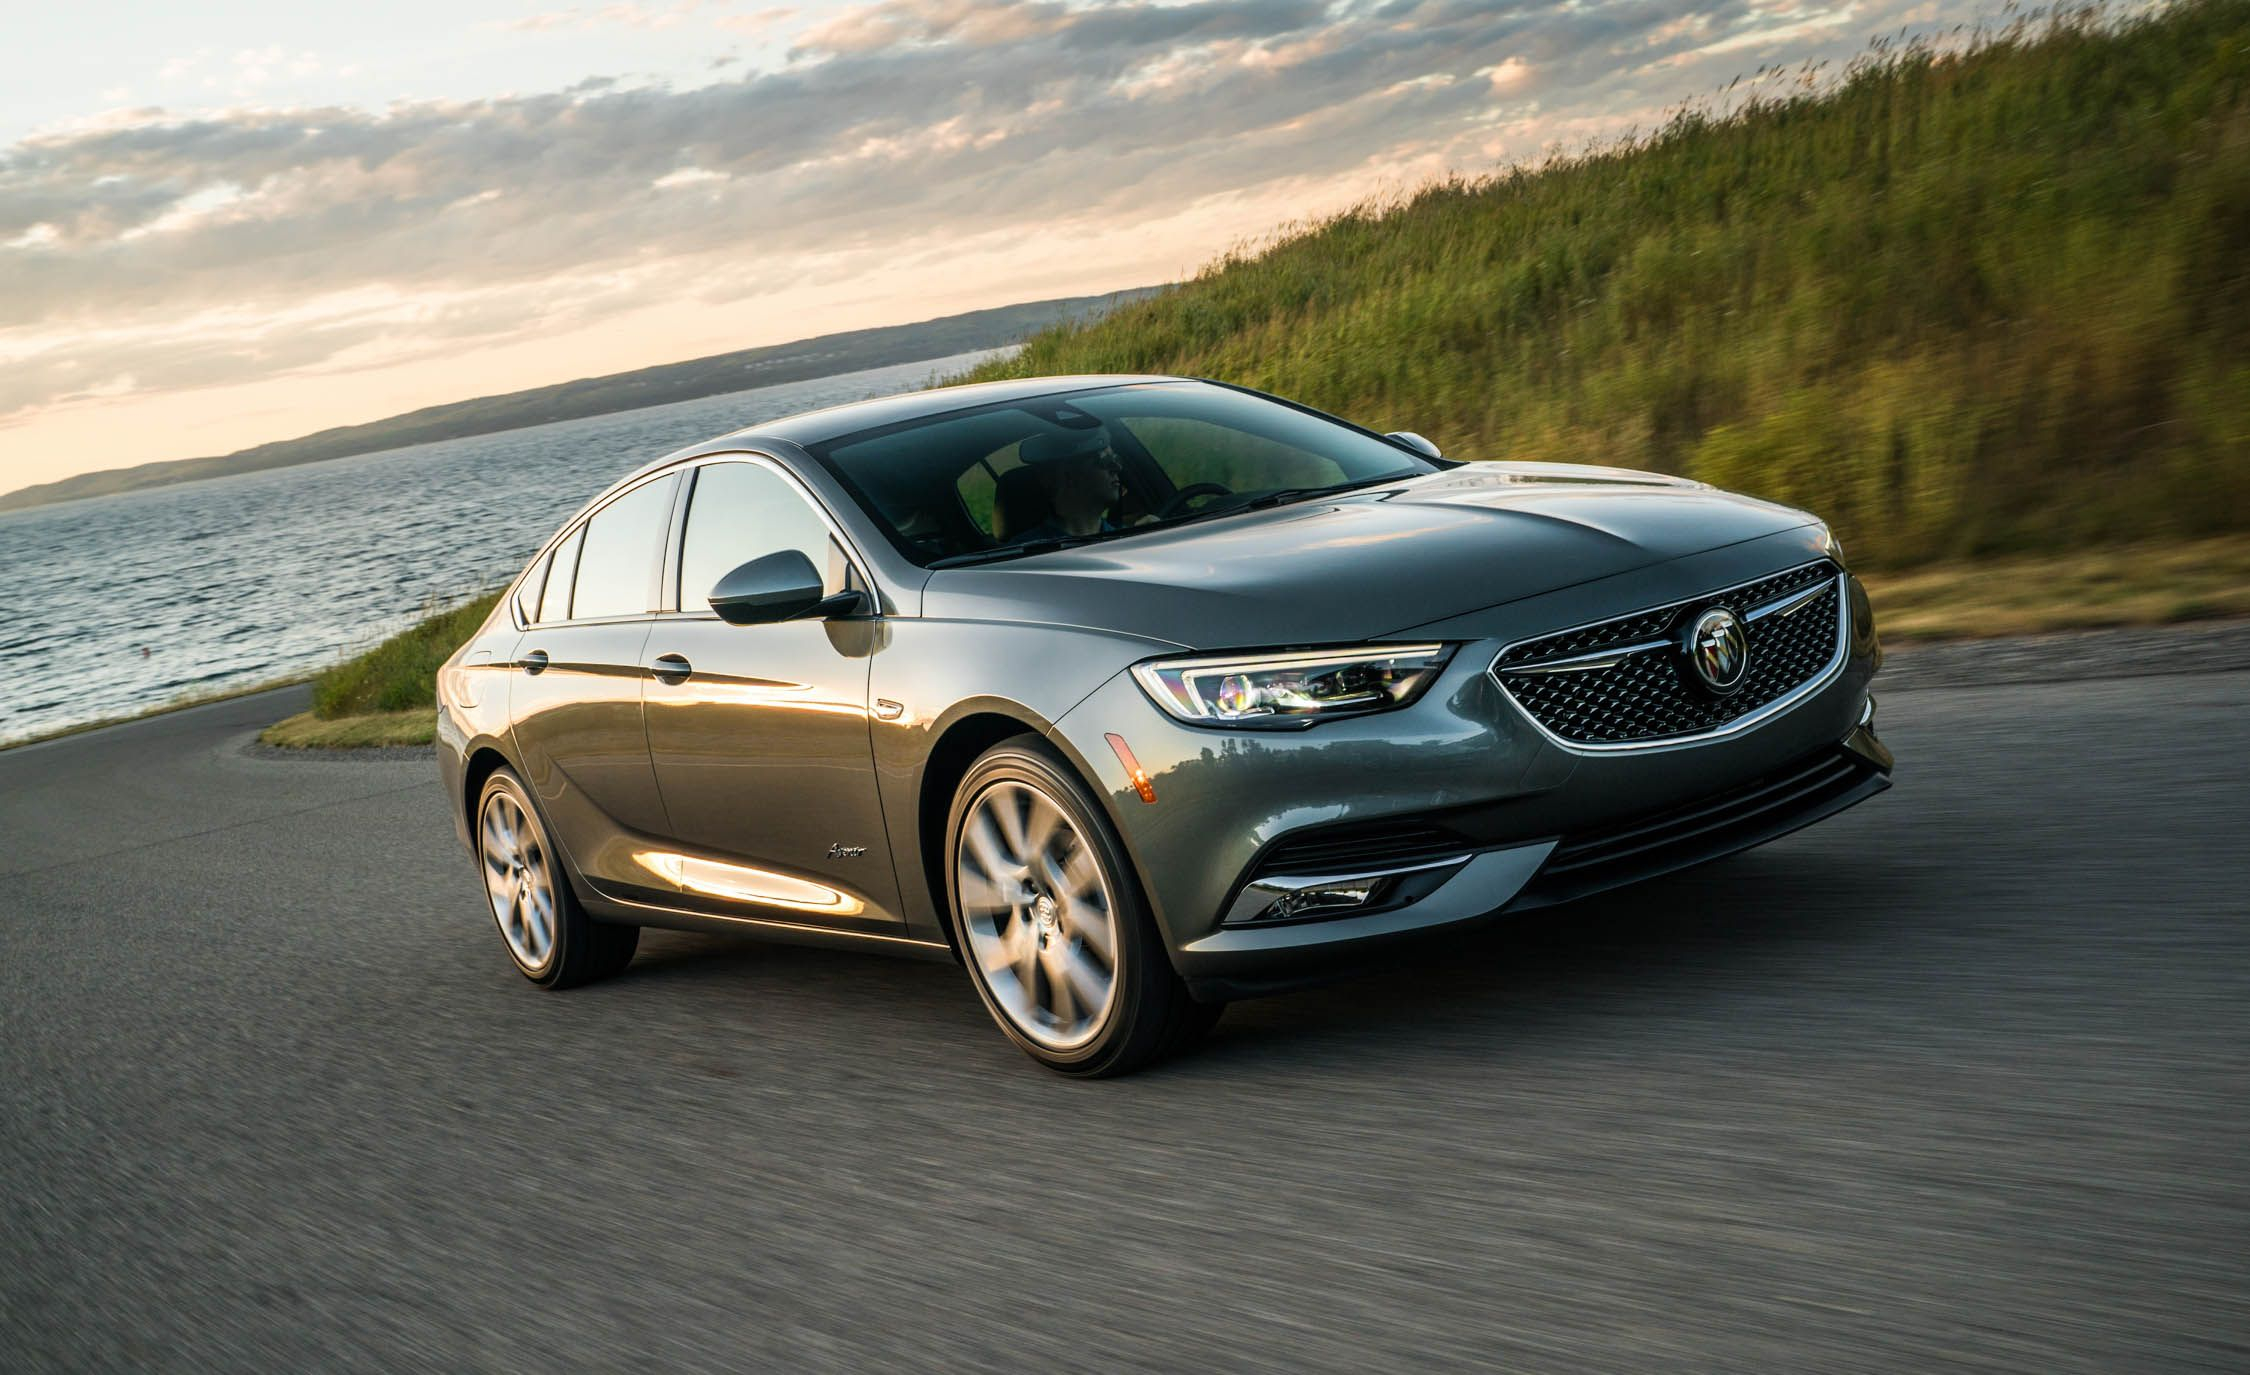 Buick Regal Sportback Adds Luxed-Up Avenir Trim For 2019 New 2021 Buick Regal Lease, Length, Trim Levels